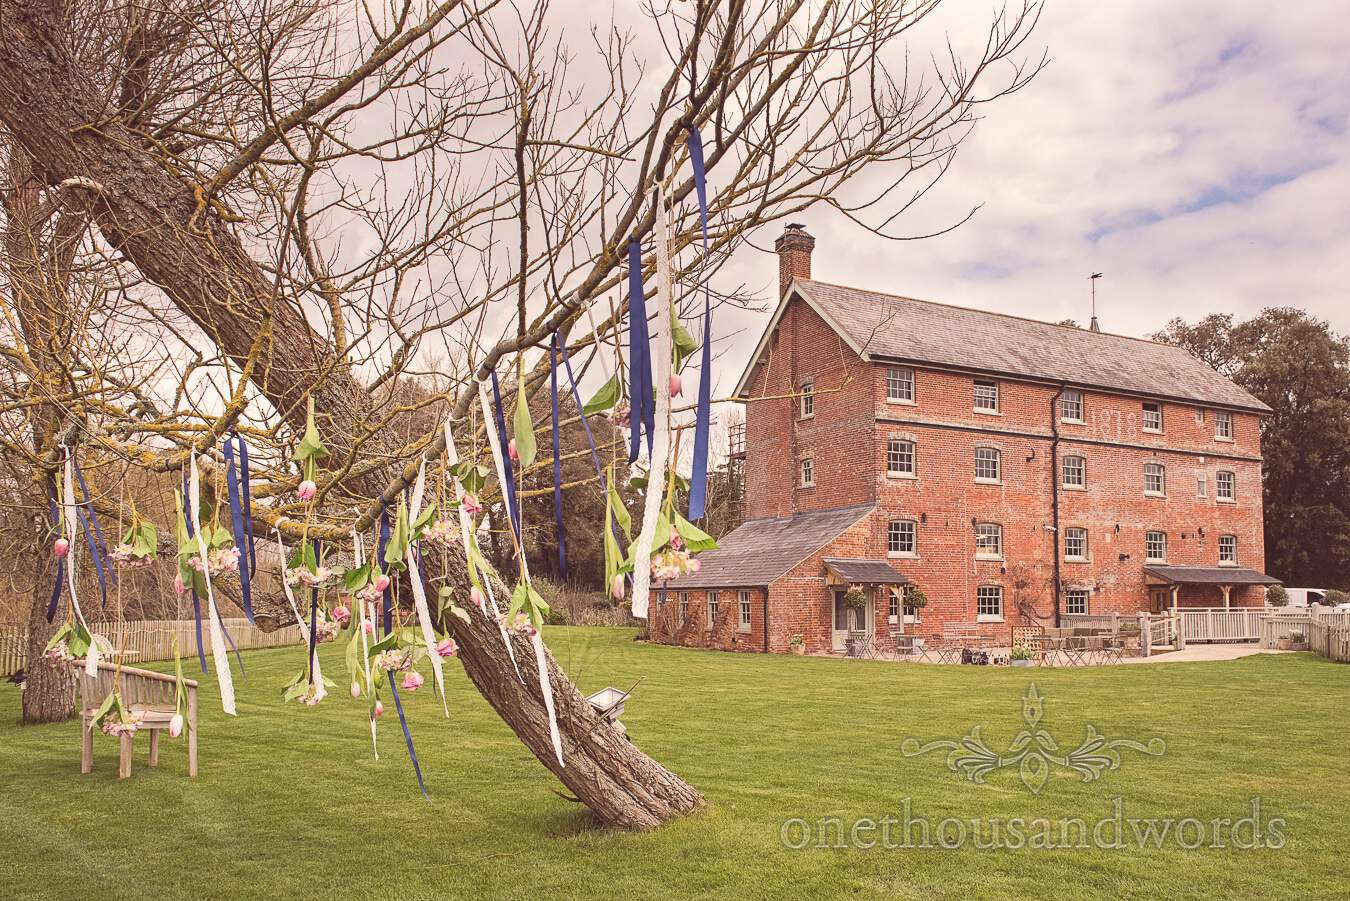 Flower and ribbon tree decoration from wedding at Sopley Mill